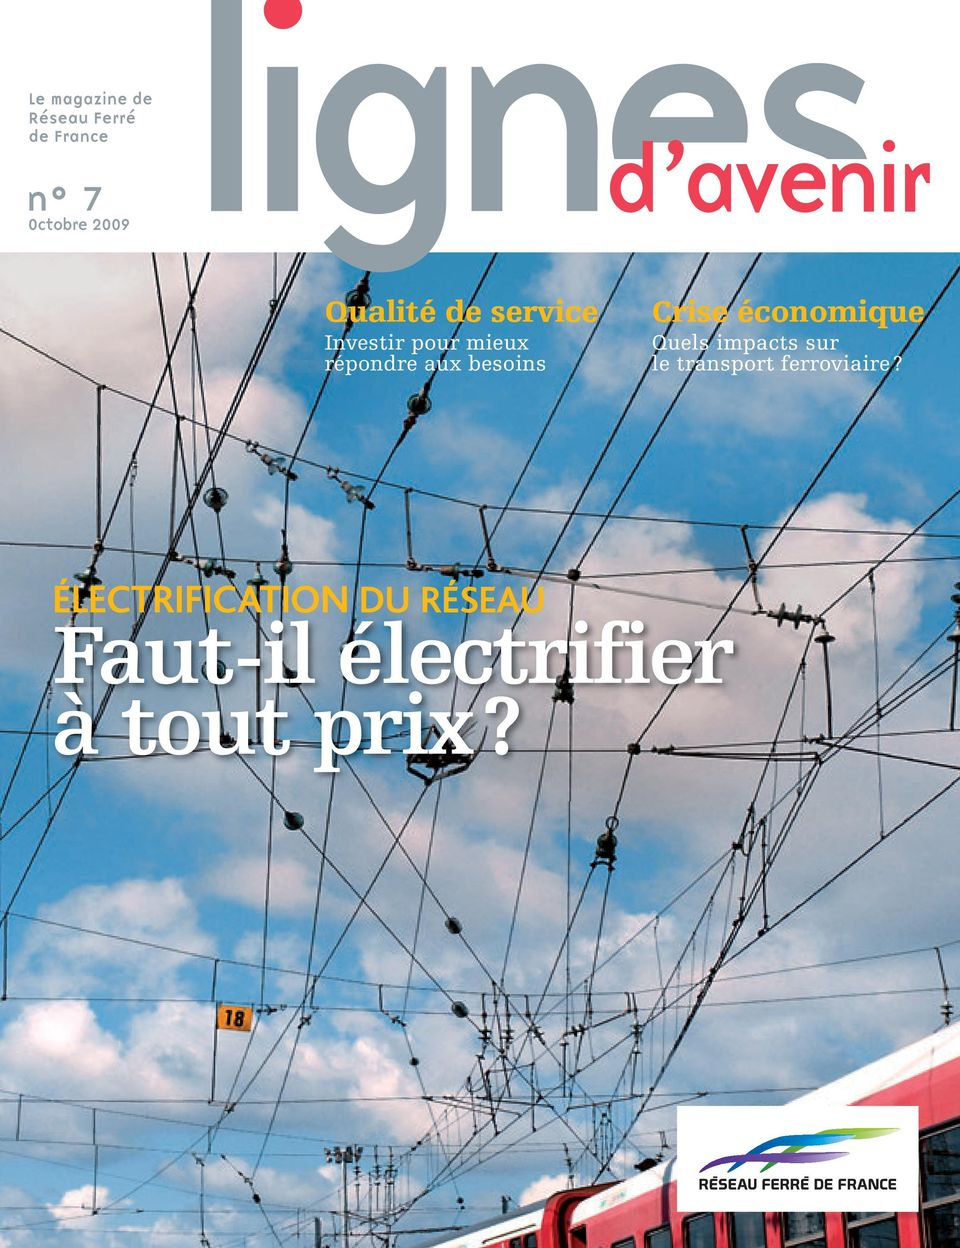 Quels impacts sur le transport ferroviaire?